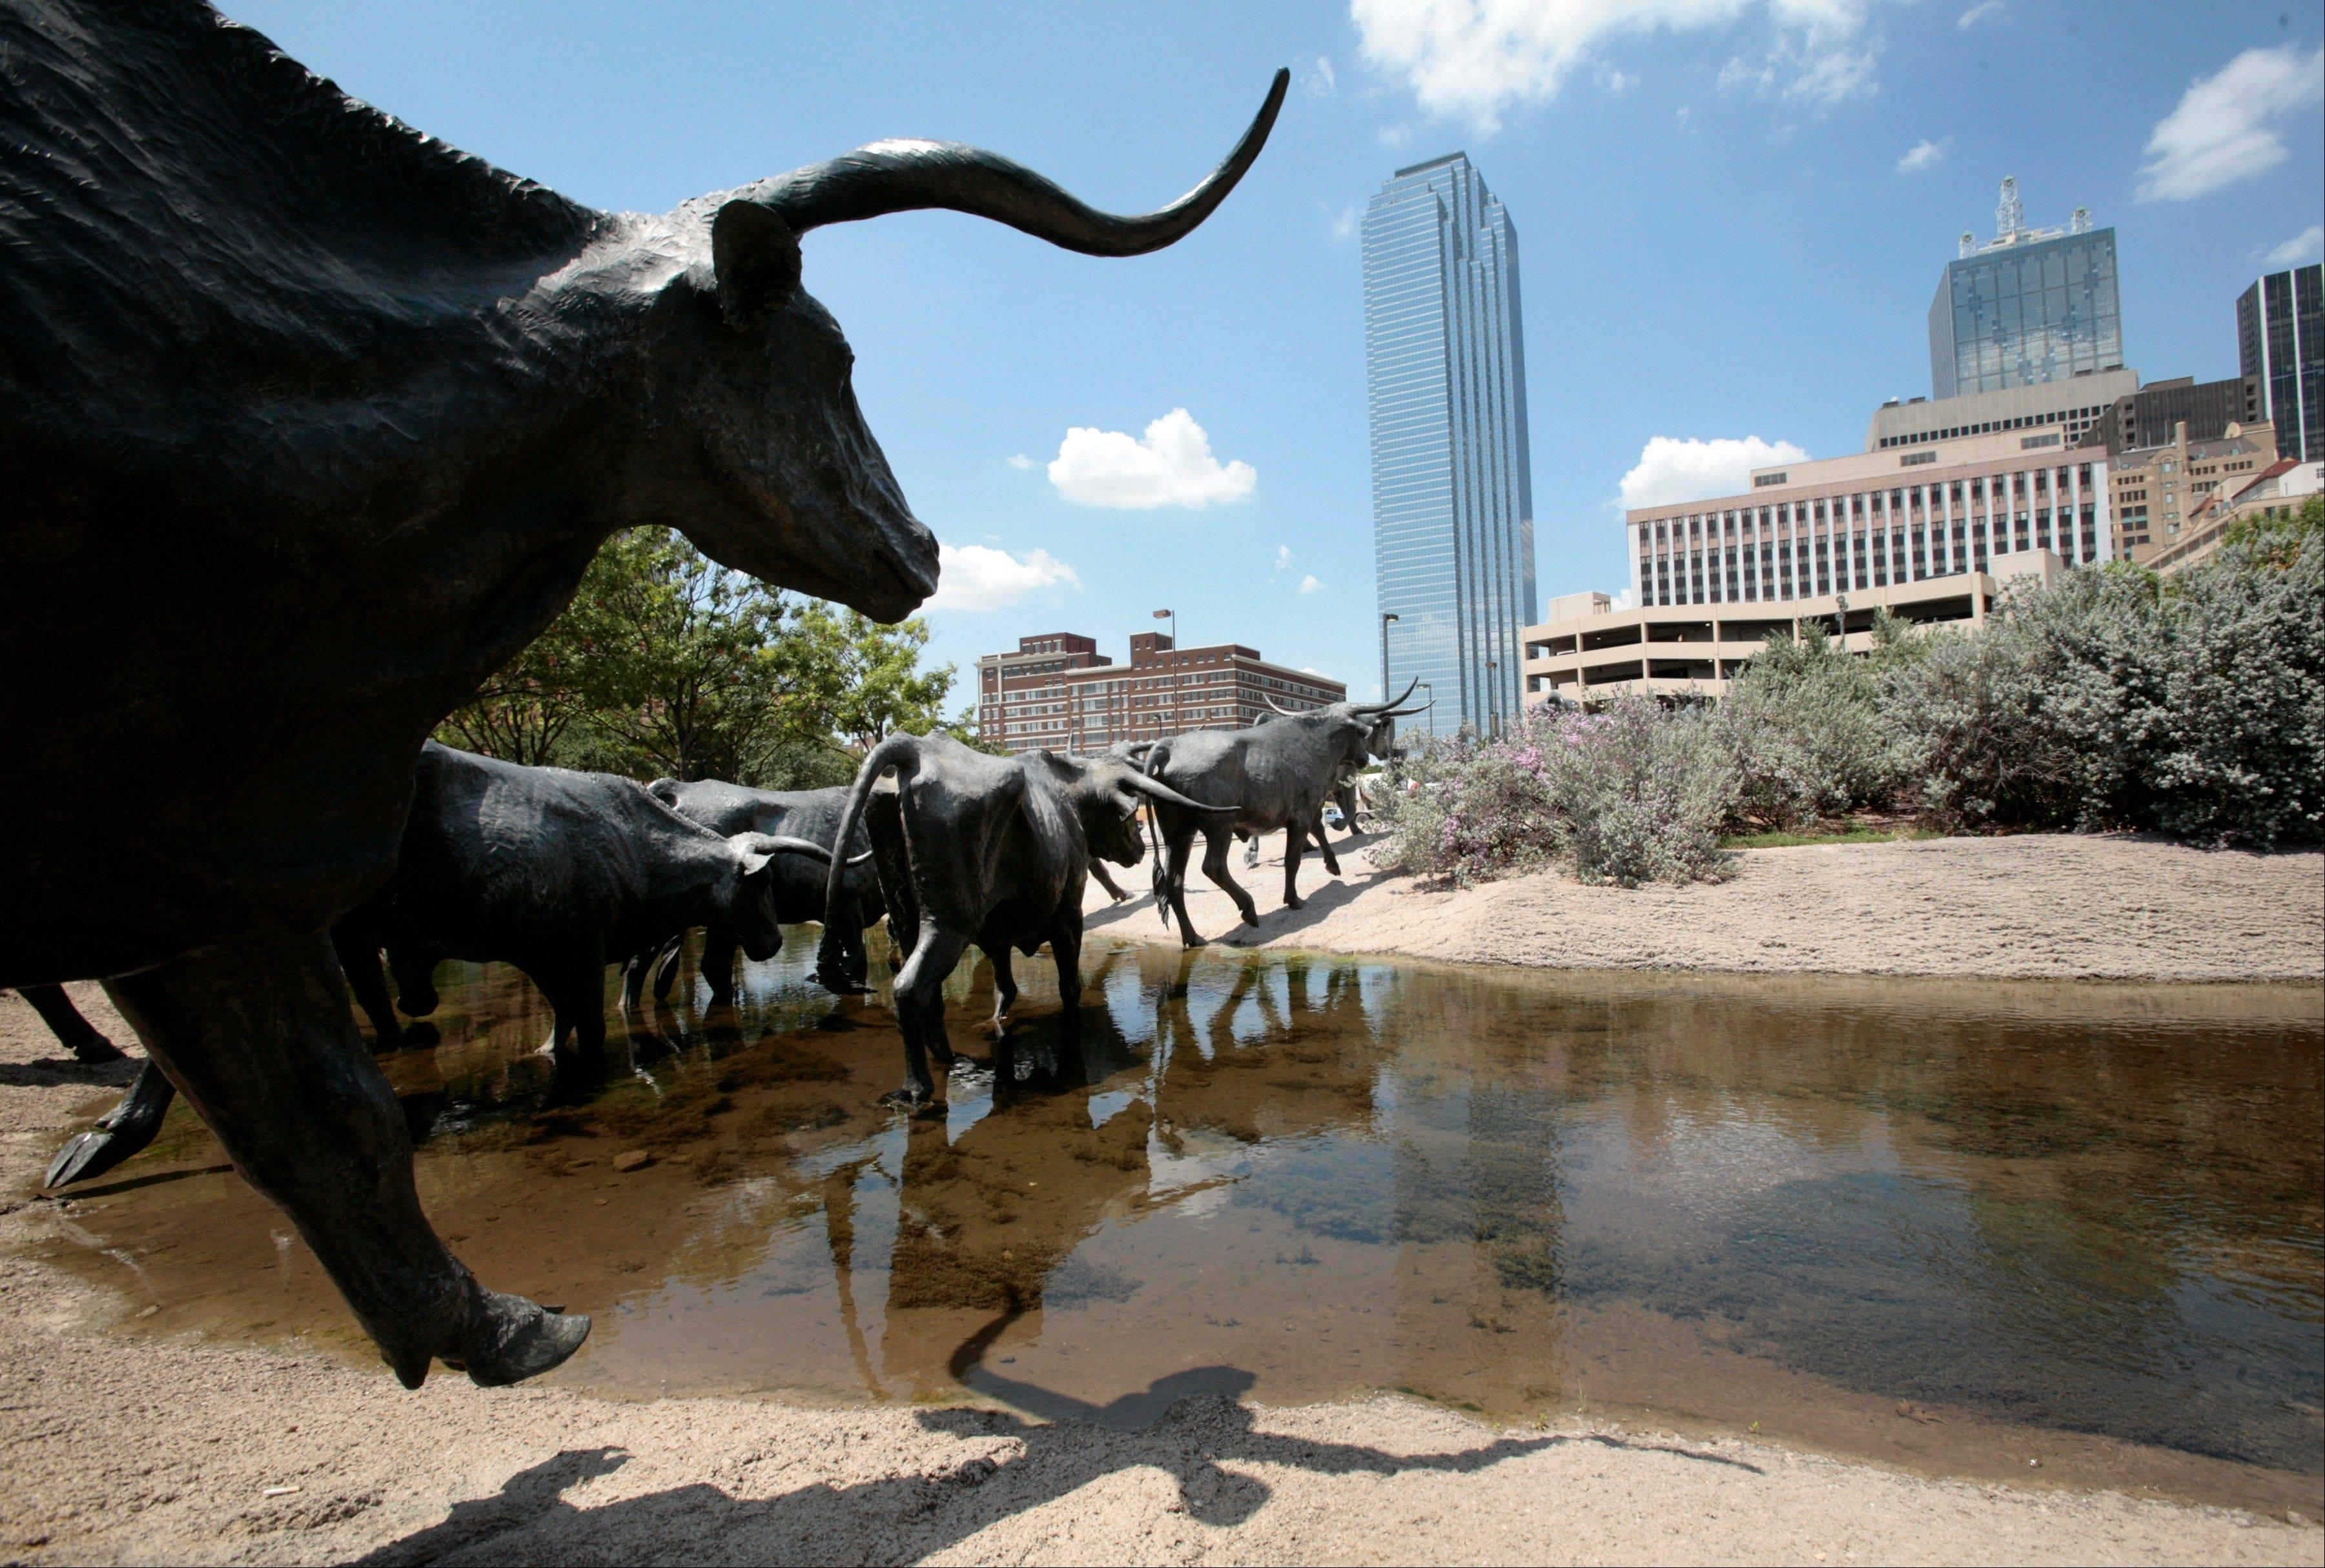 Dallas is a city that likes to do things big, like this outdoor longhorn steer sculpture in downtown, but that doesn't mean you'll have to sell the ranch to have a good time here.